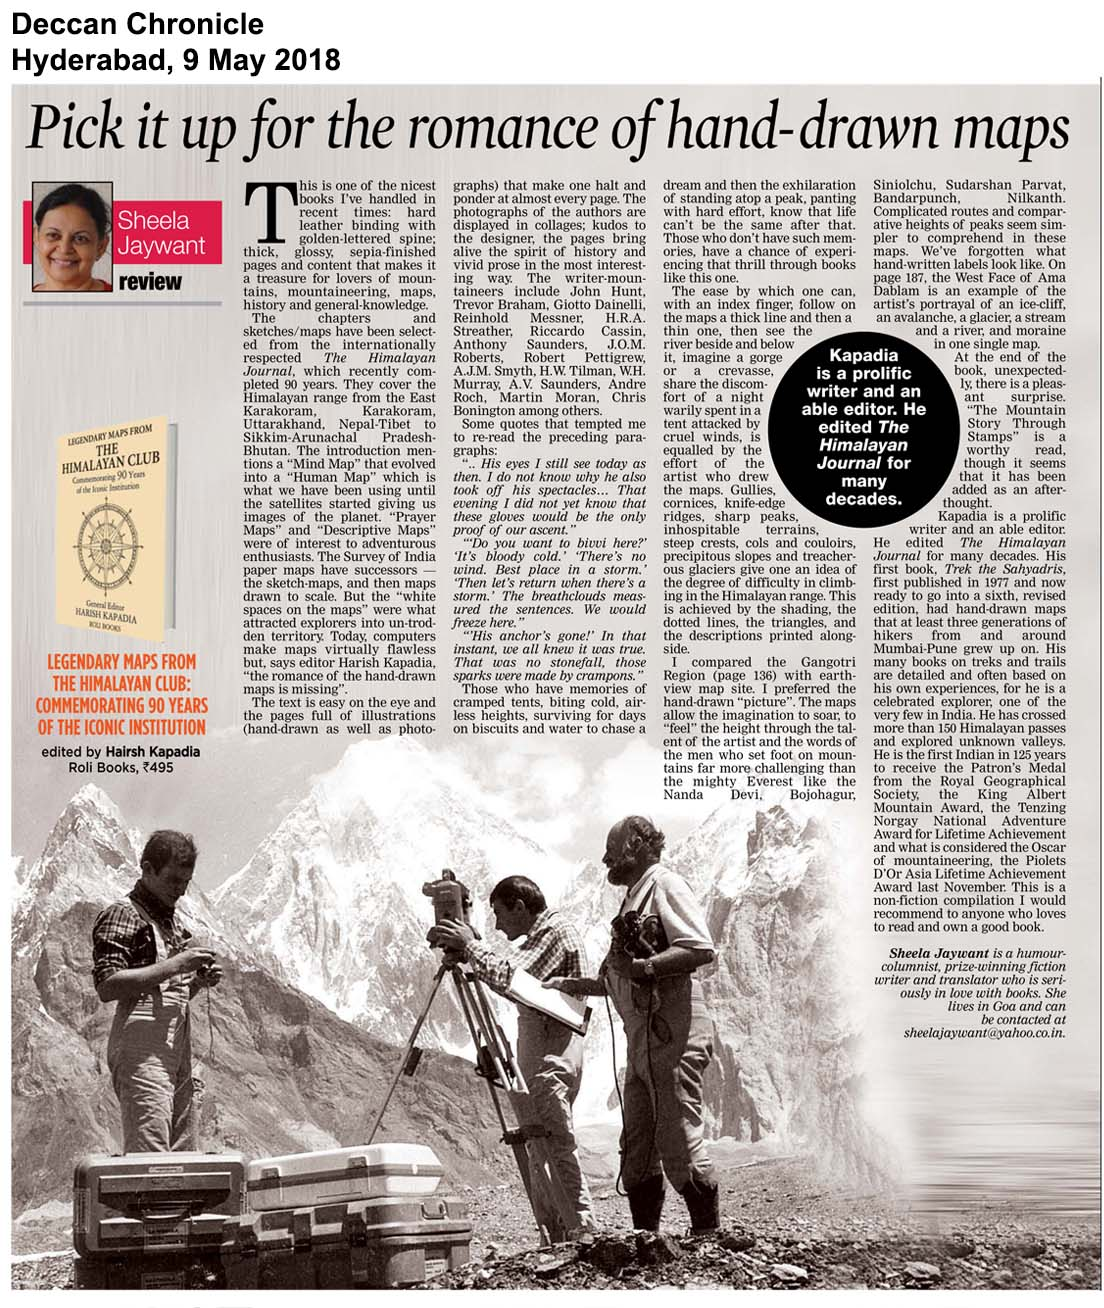 Legendary Maps From The Himalayan Club<br><span>Deccan Chronicle, Hyderabad</span>